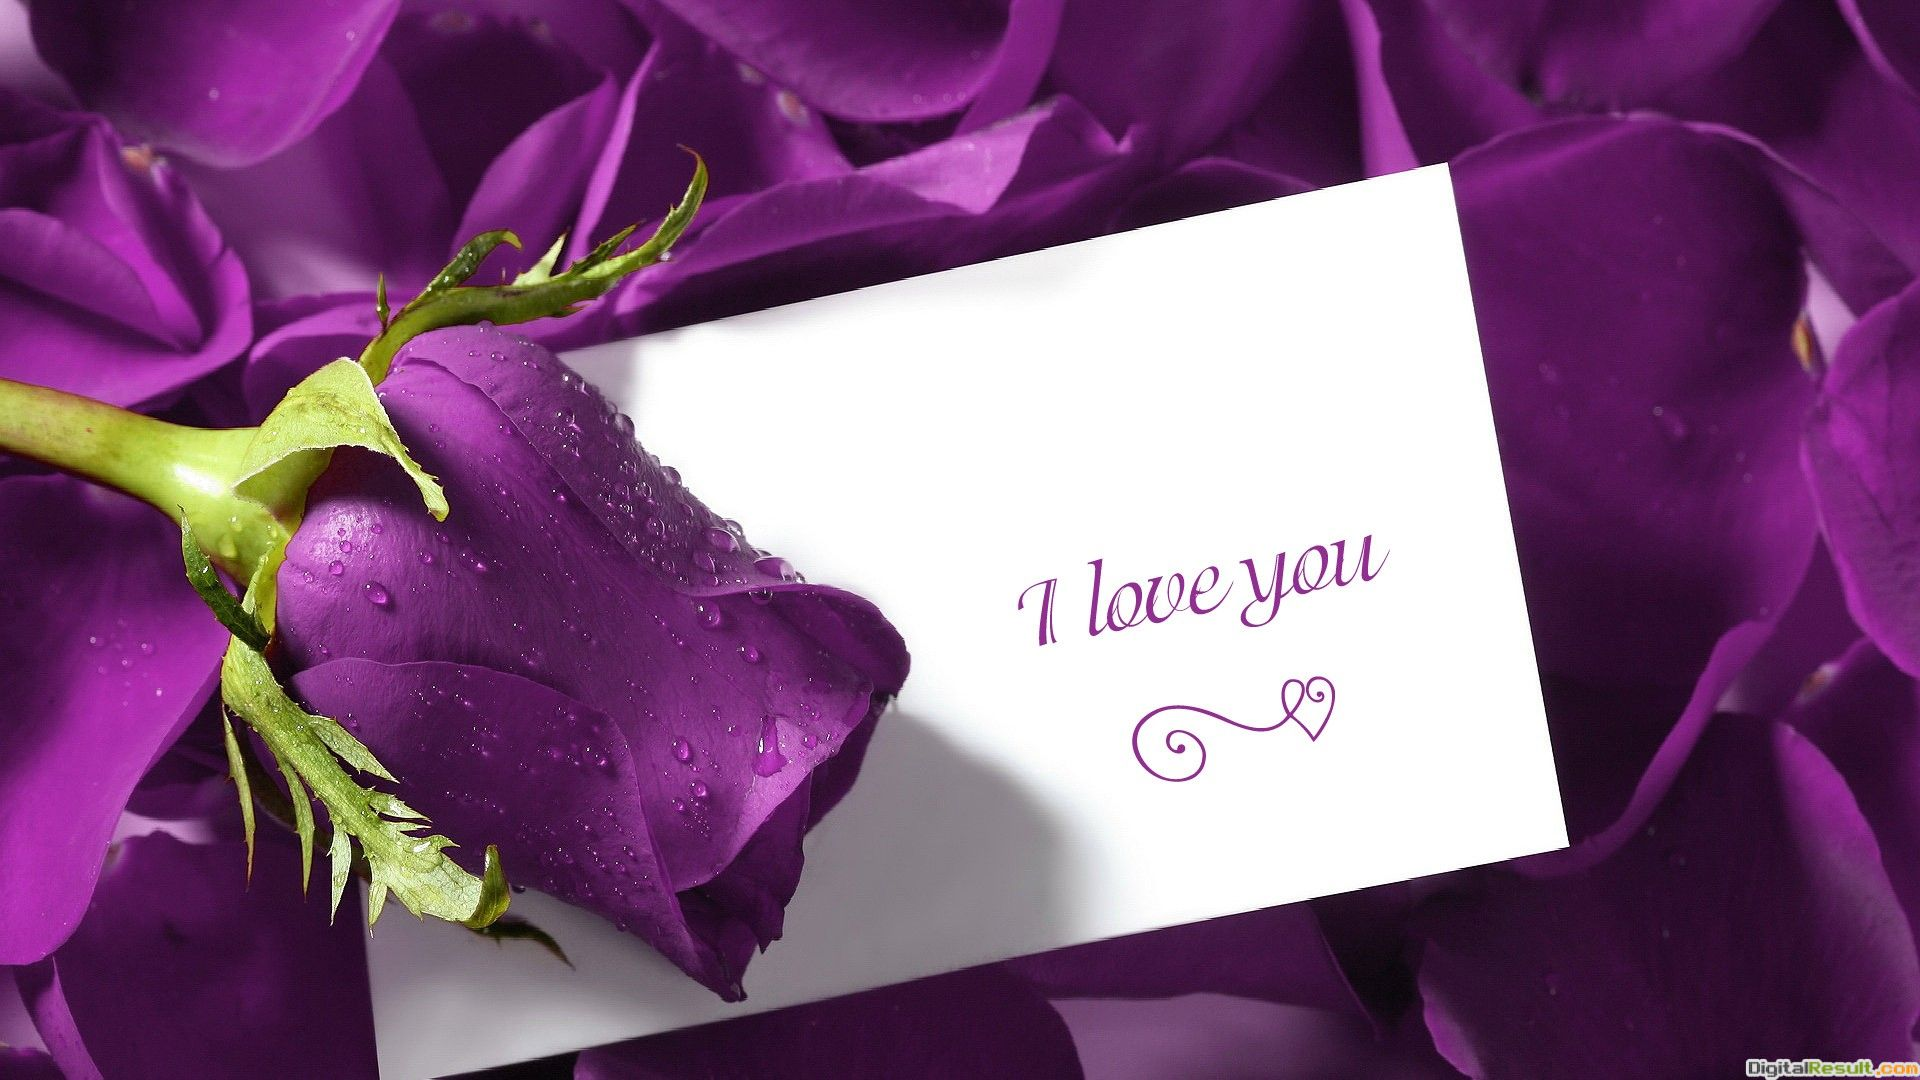 Love You Quotes Flower Background HD Wallpaper I Love You Quotes